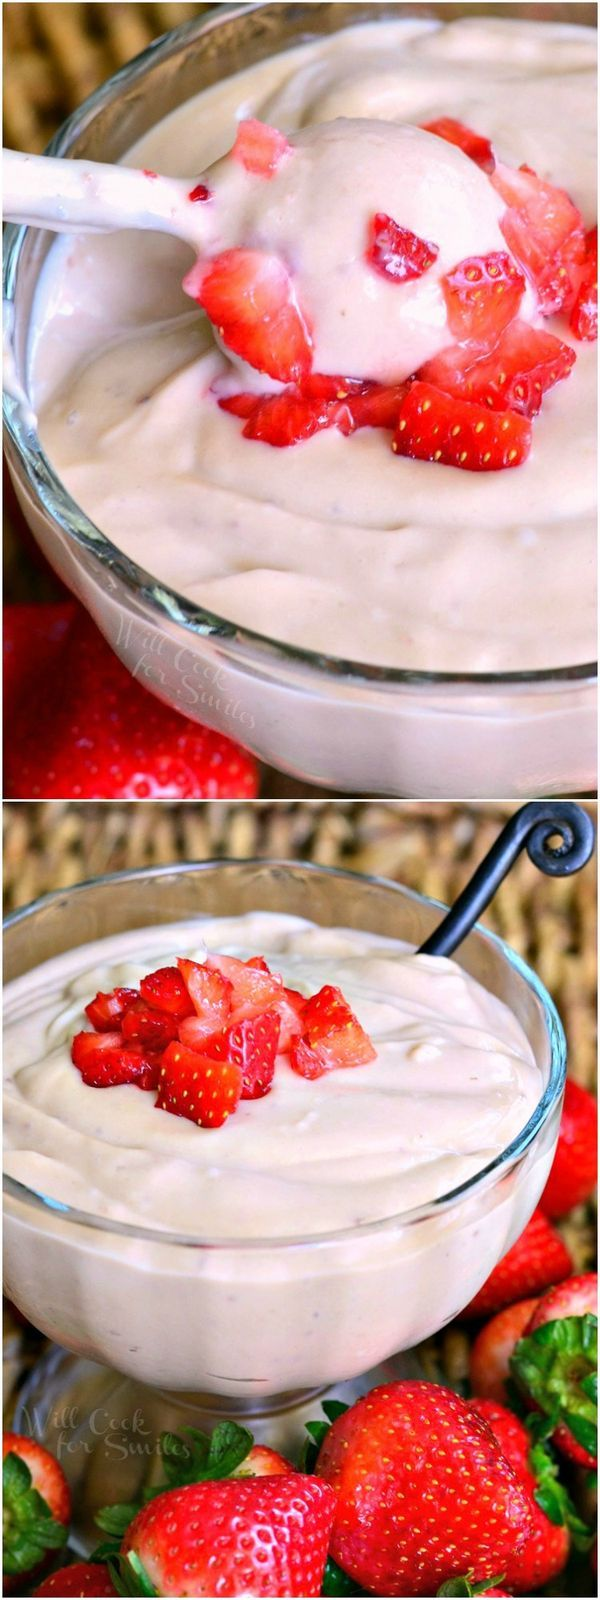 Homemade Strawberry Pudding! from willcookforsmiles.com #dessert #sweet